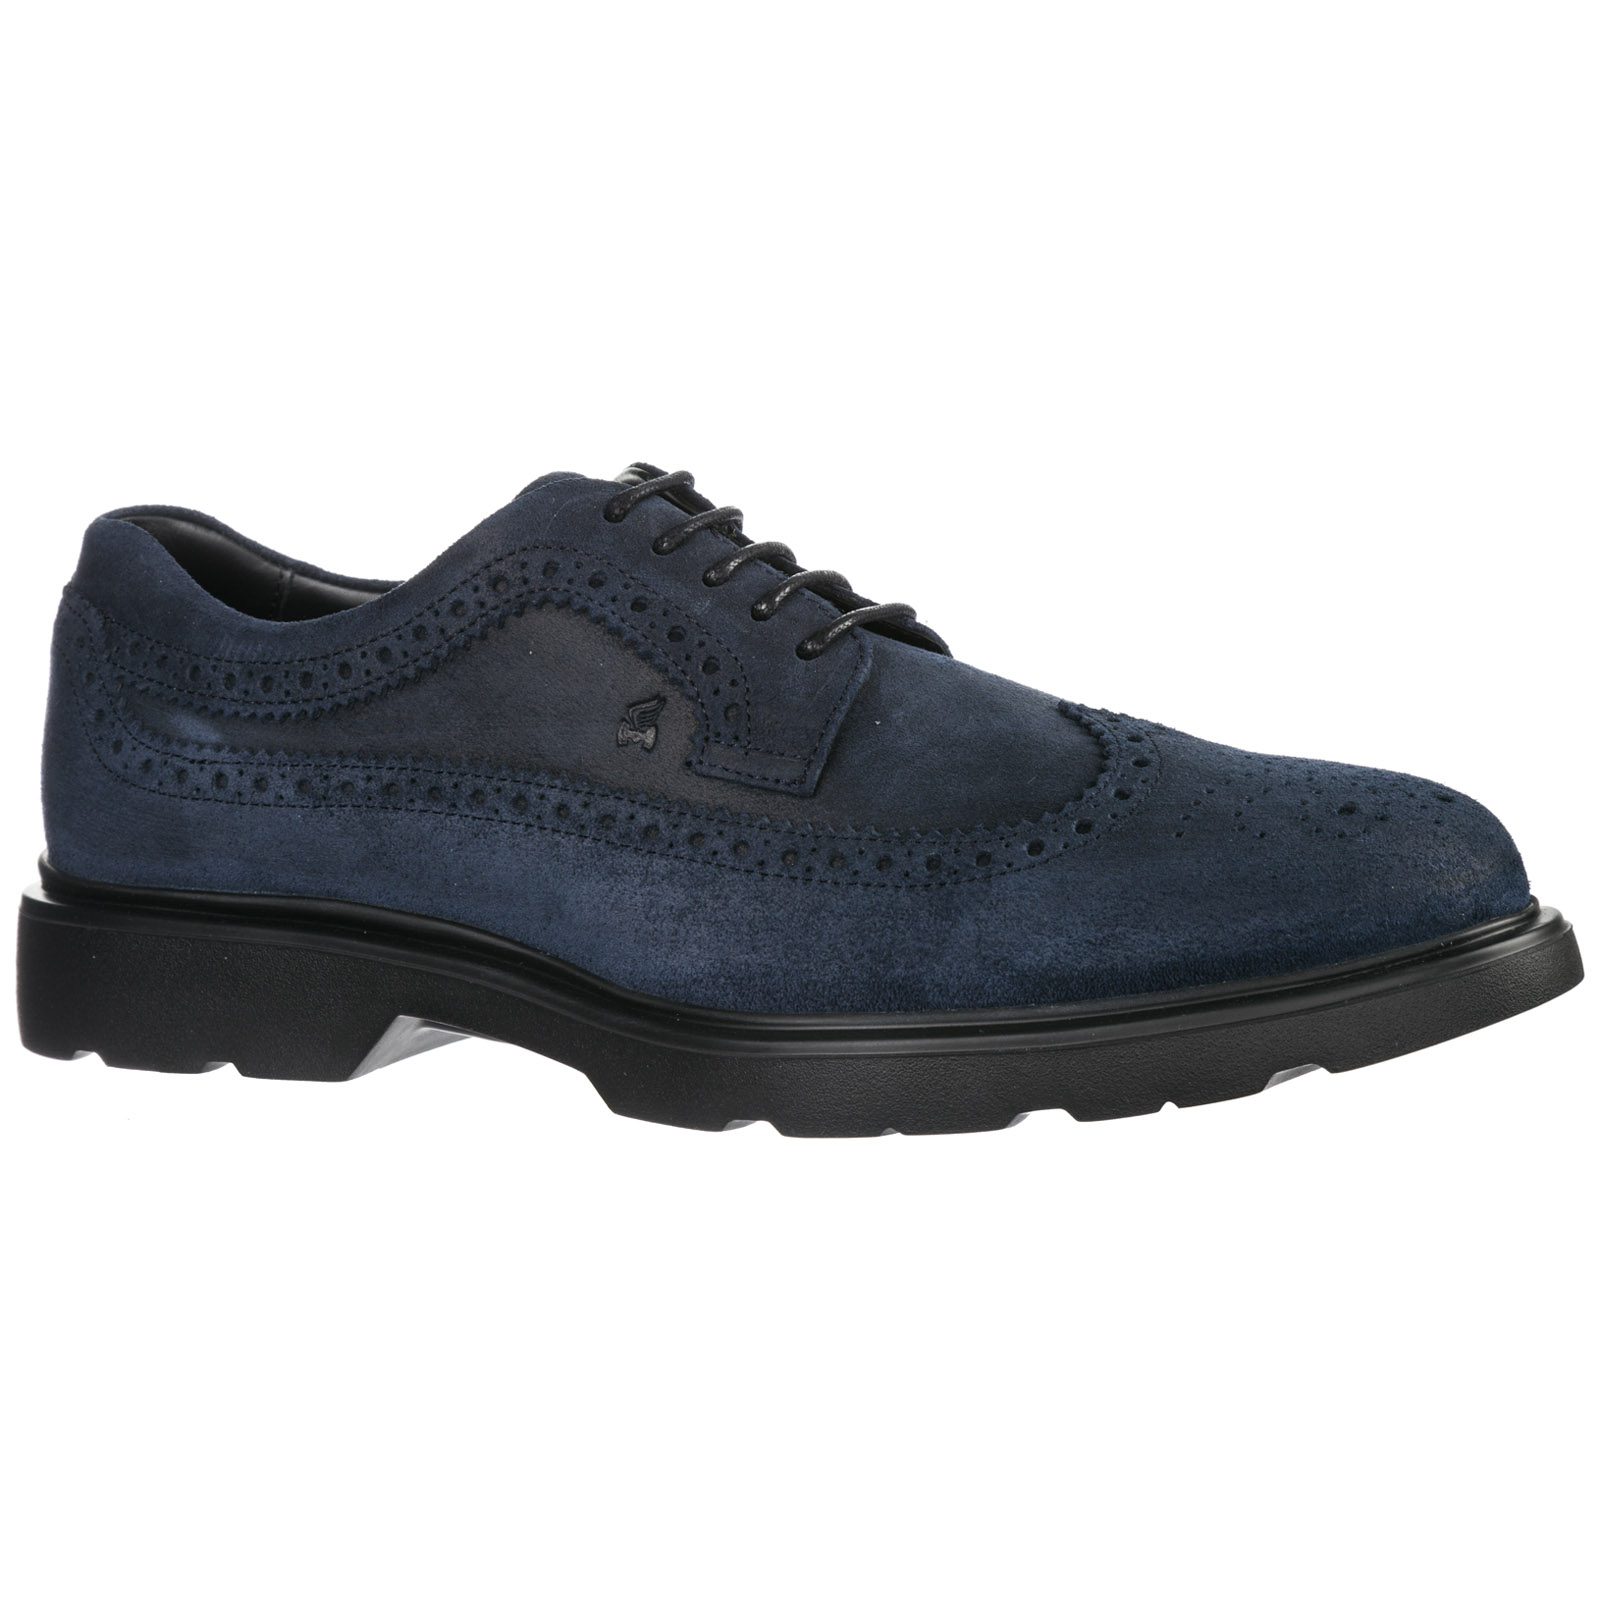 Men's classic suede lace up laced formal shoes h304 derby